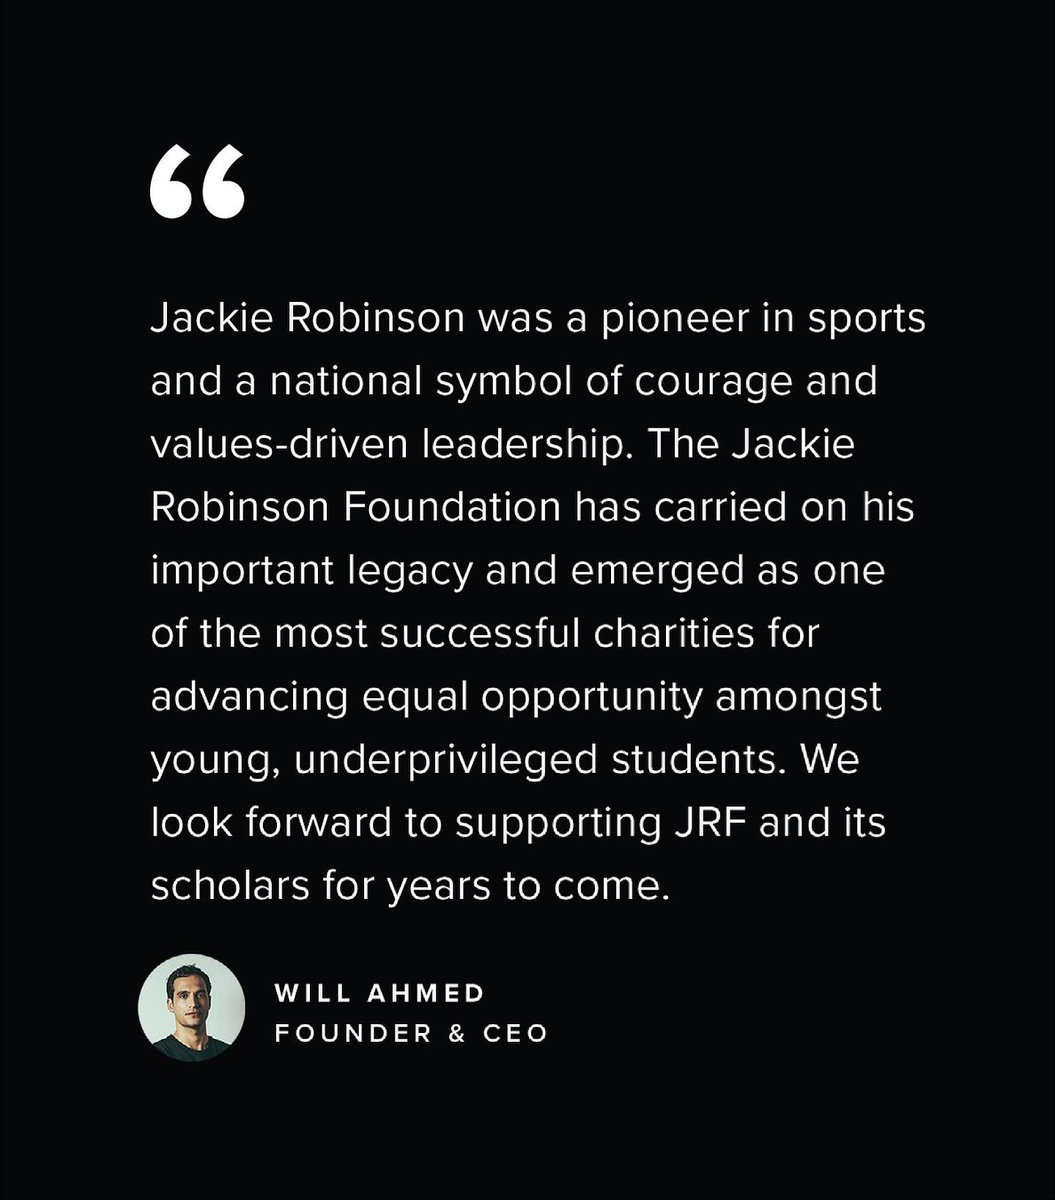 I am thrilled to announce our partnership @whoop with the Jackie Robinson Foundation 🖤 We pledged last summer to do more to create equal opportunity in this country and @JRFoundation emerged as an amazing partner.